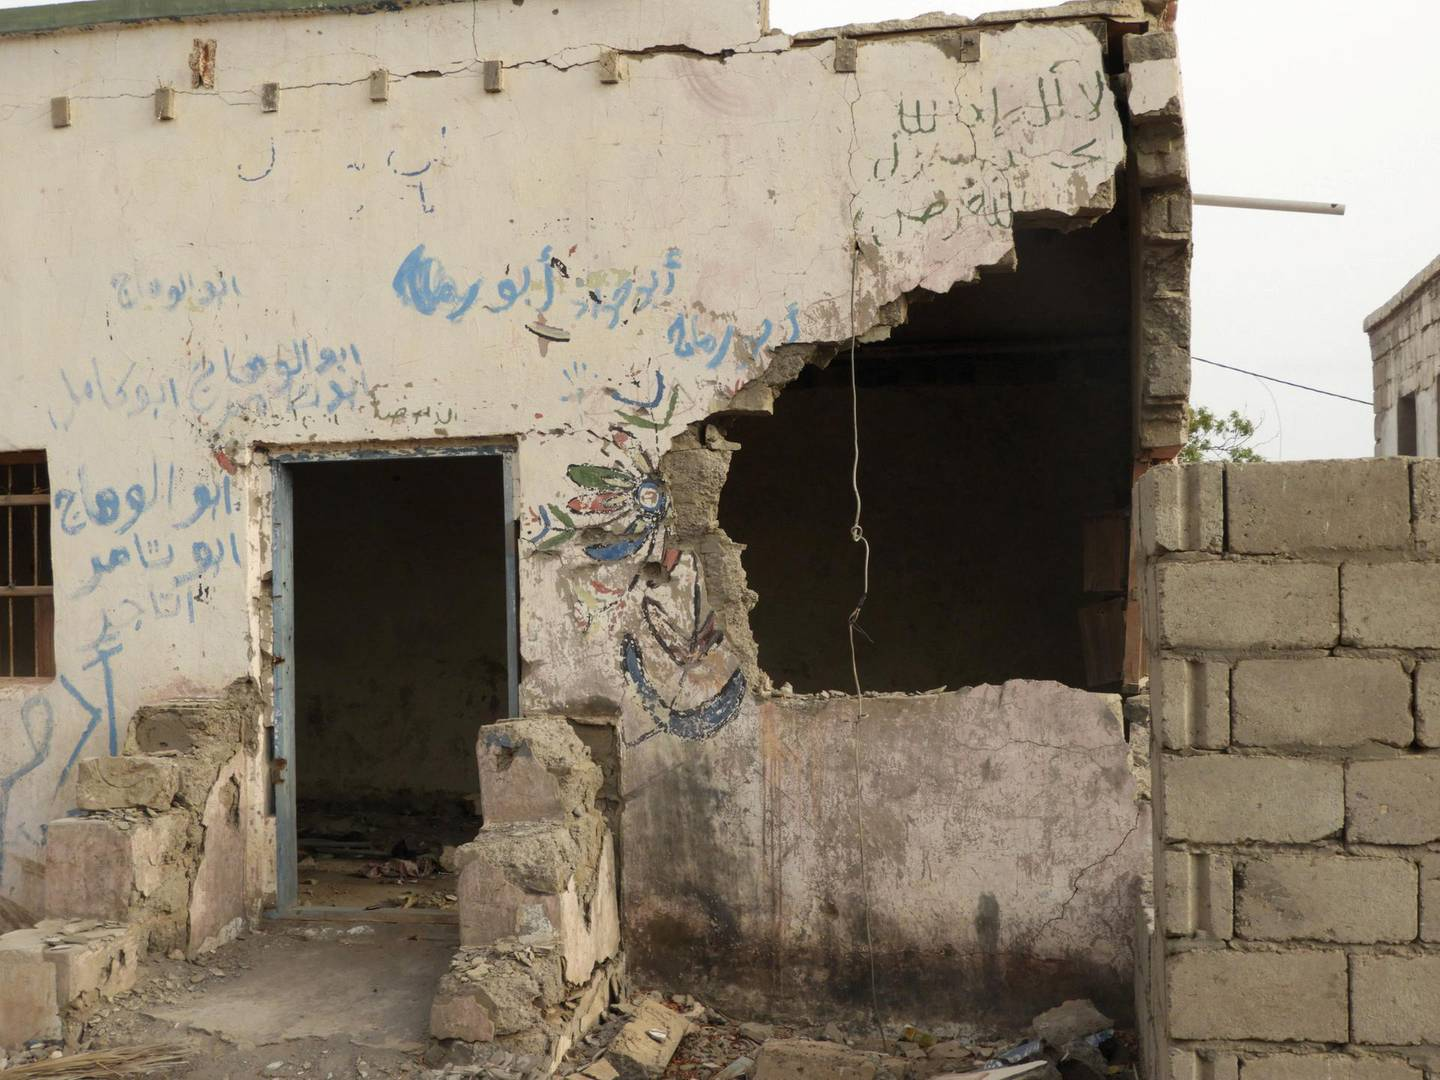 A resident in the village of Al-Kataba shelled by the Houthi militia. Ali Mahmood Mohamed for The National